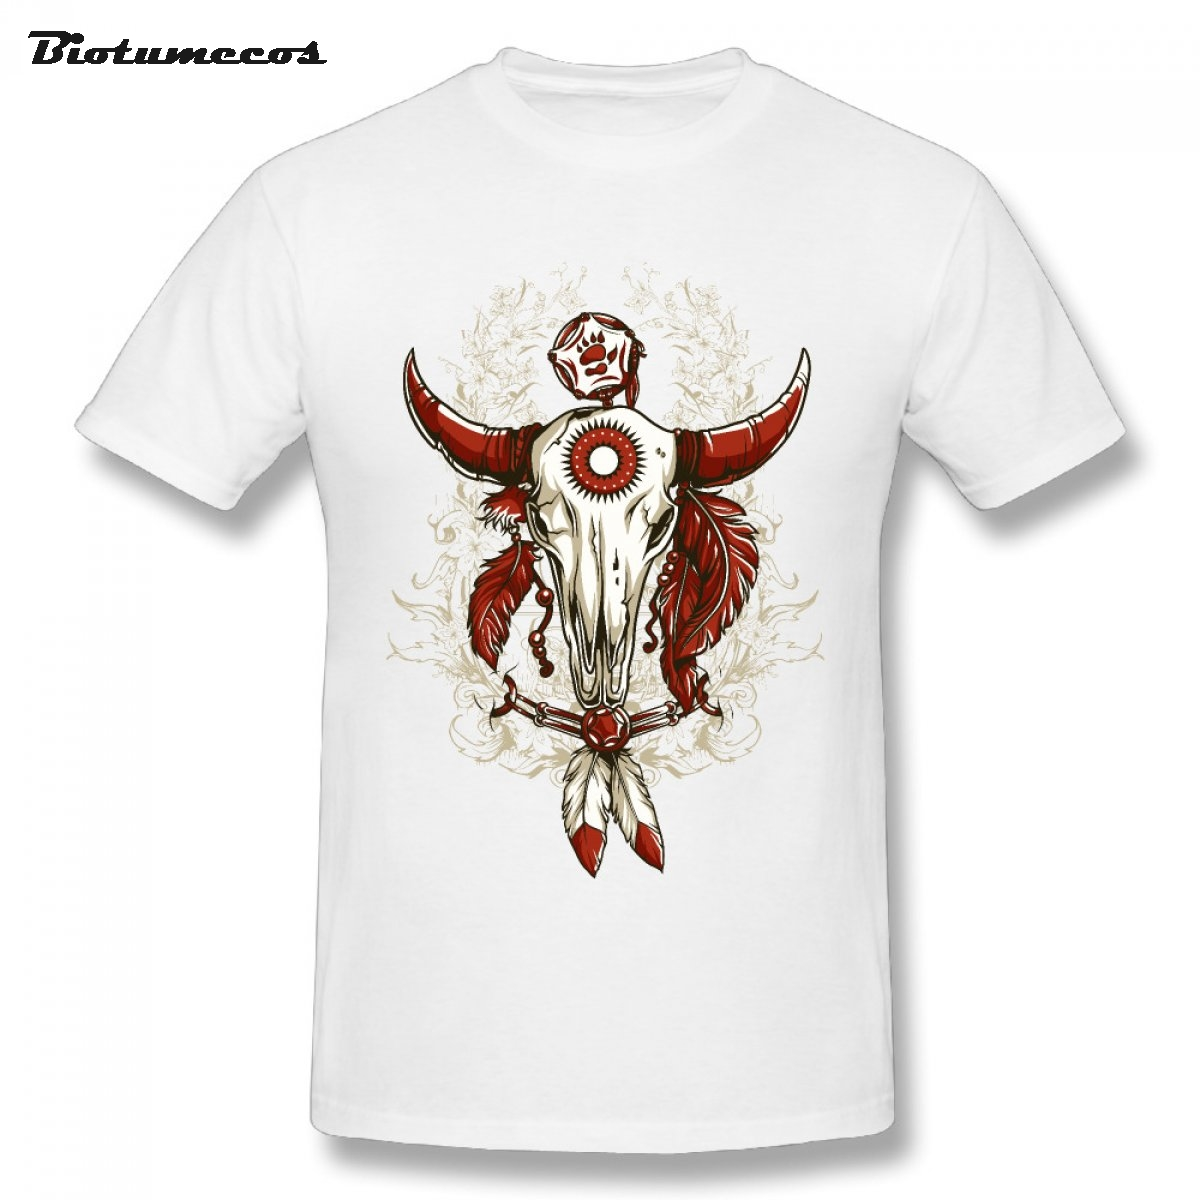 664aa1c89a156 Summer Men T shirt Goat Skull Tied With Shackle Red Horns Printed Short  Sleeve O-neck 100% Cotton Tees Shirt Top Clothing MTK151